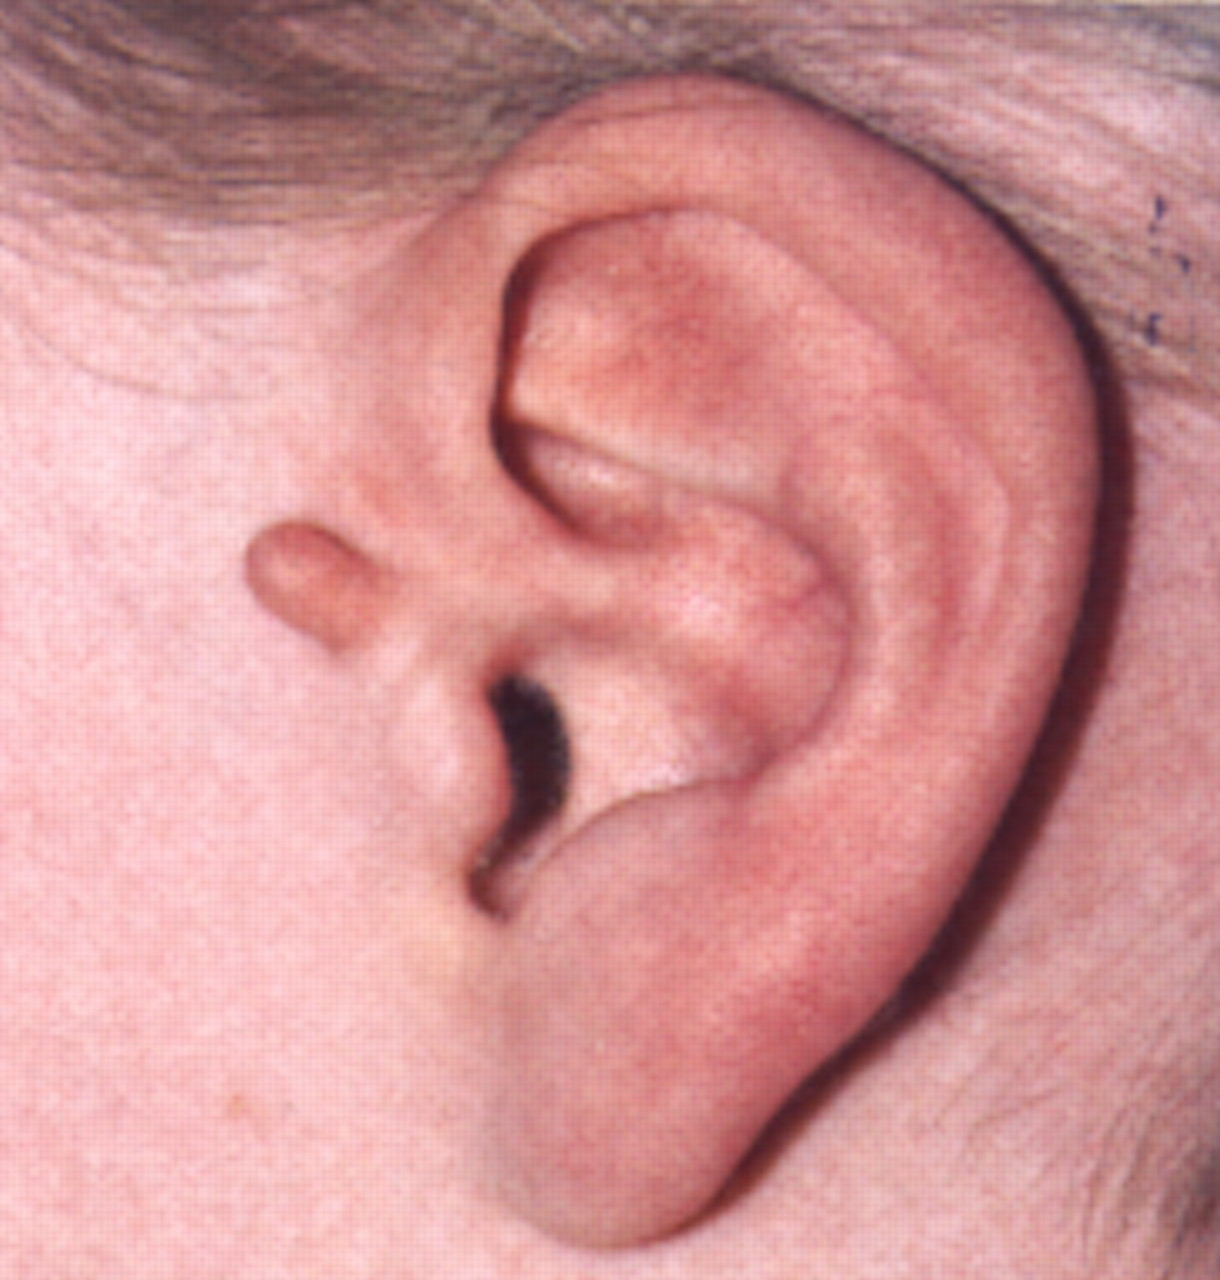 ABC of General Surgery in Children: LUMPS AND SWELLINGS OF THE HEAD